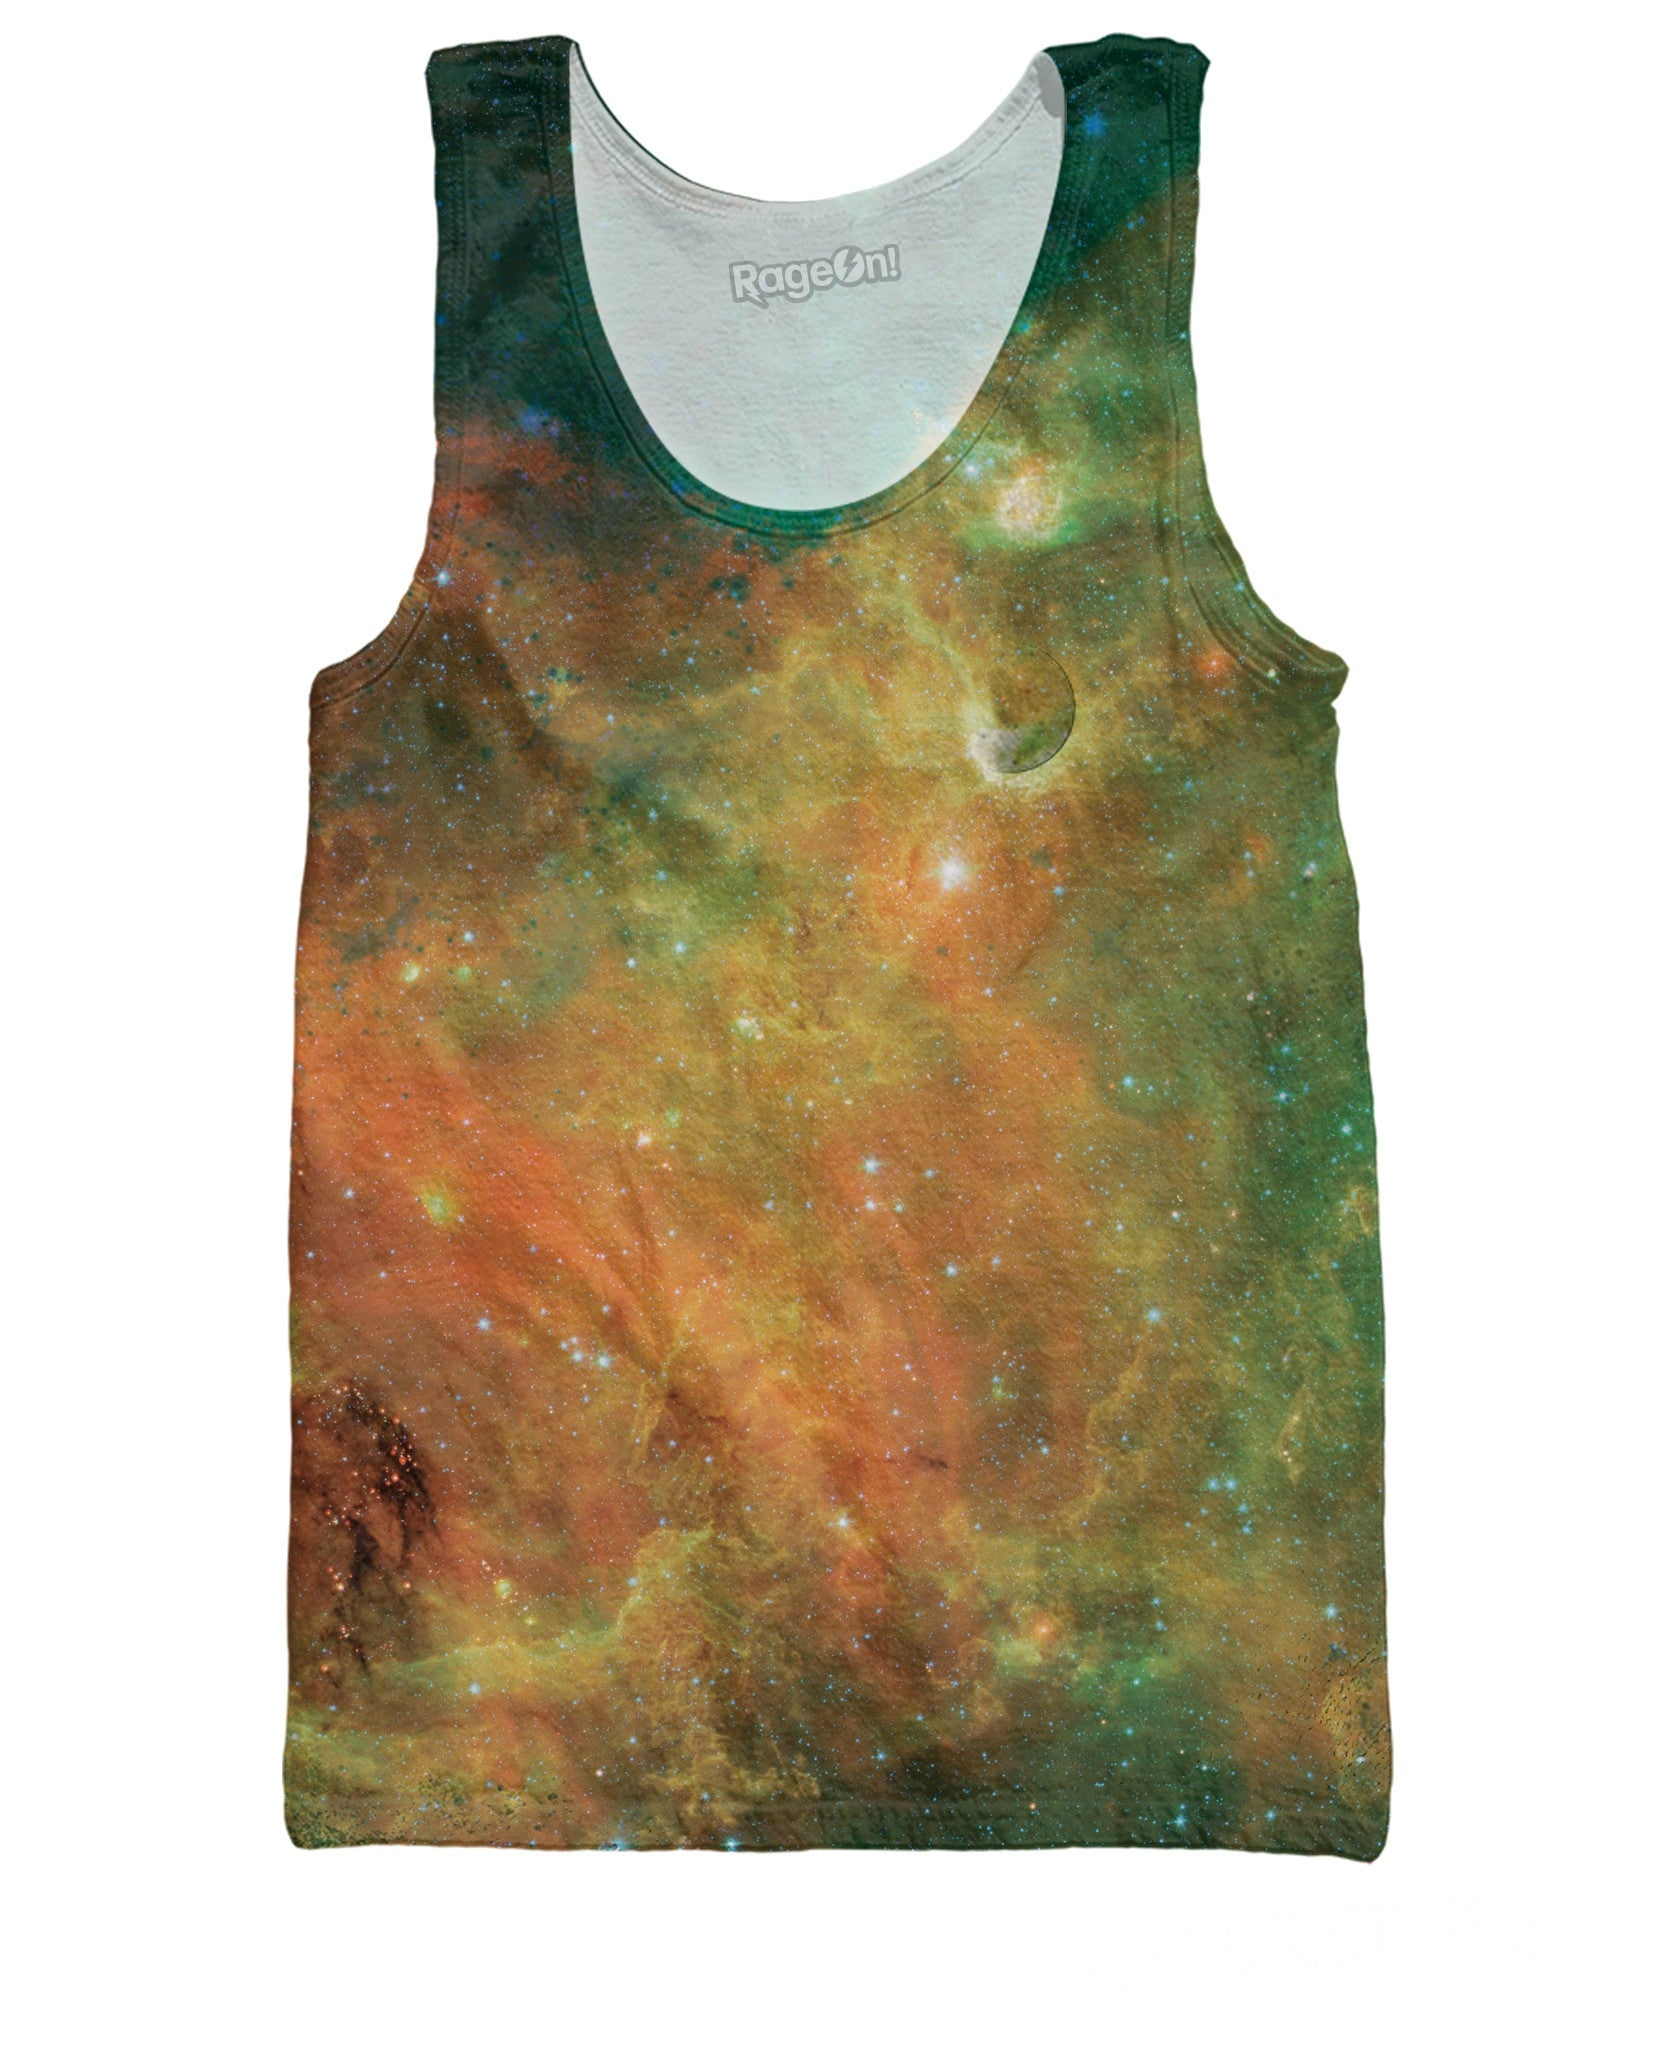 Outer Limits Tank Top